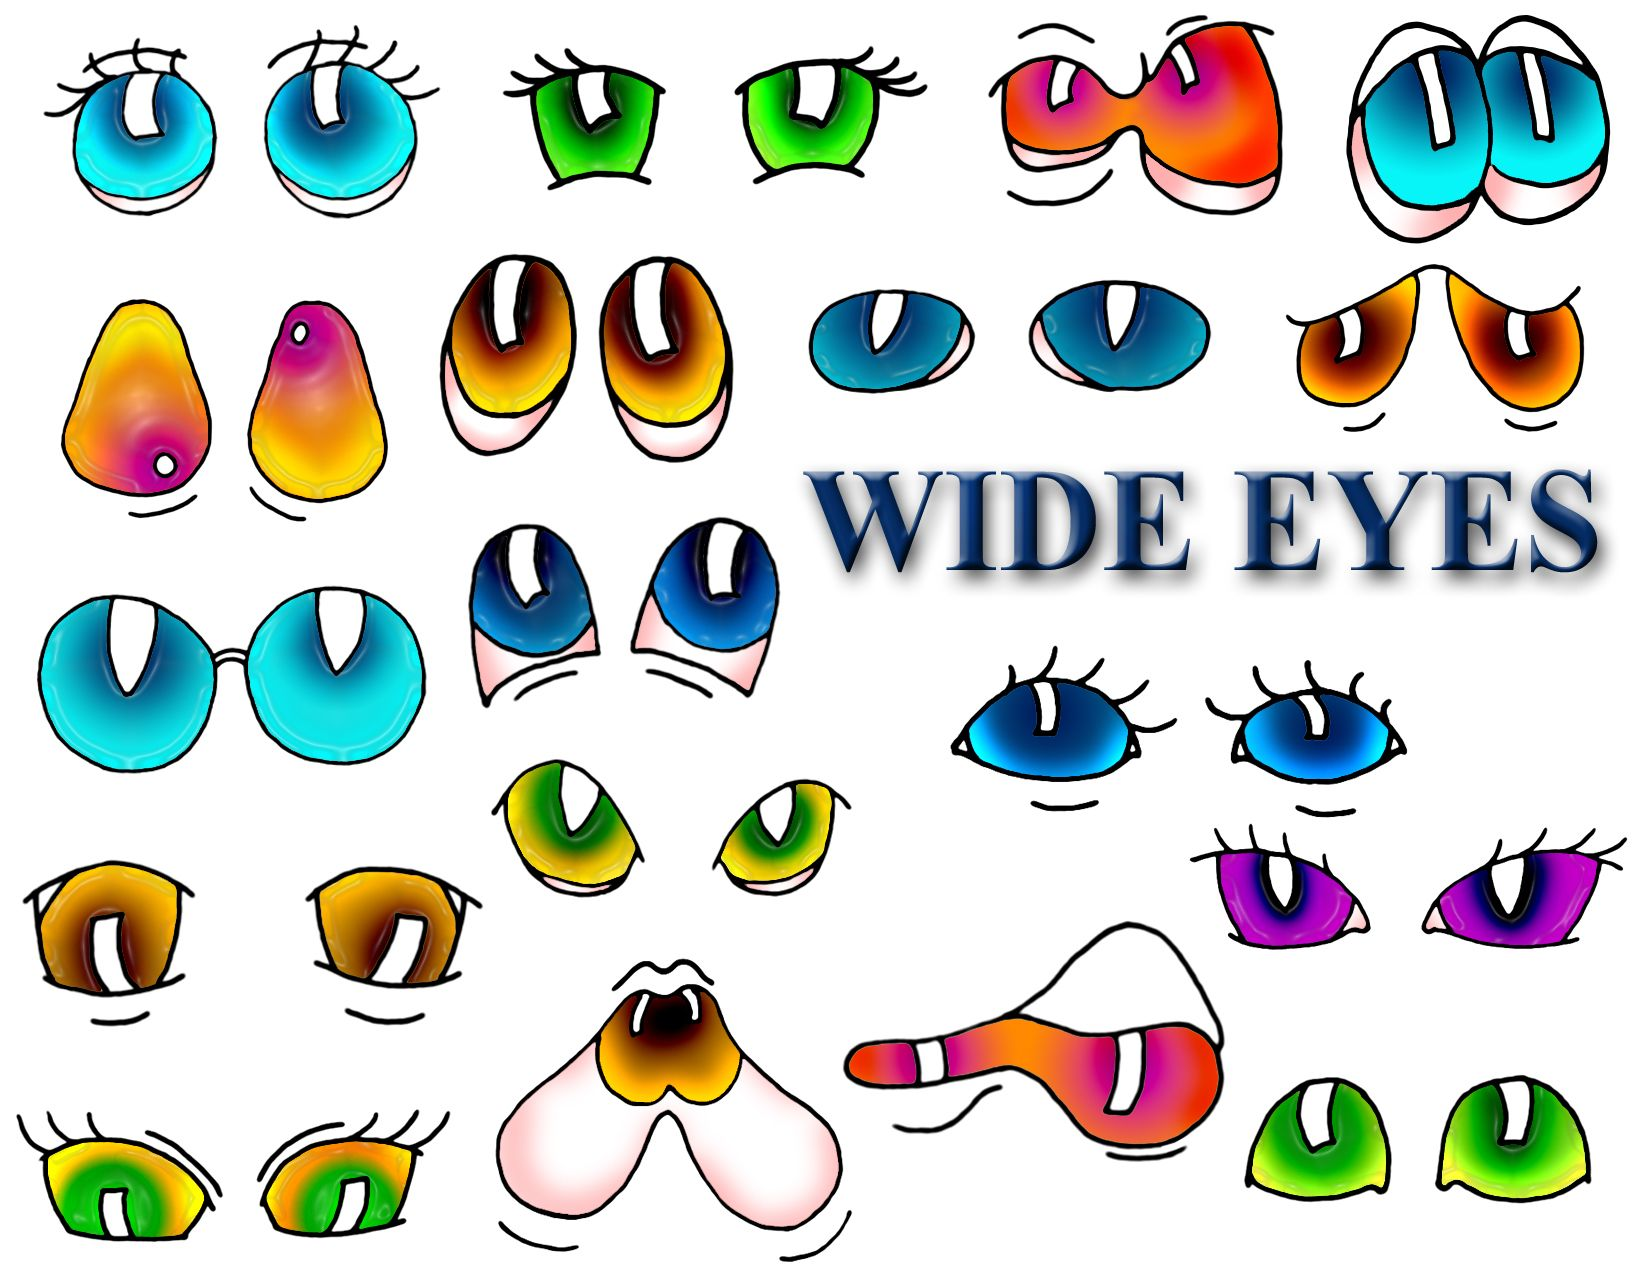 small resolution of halloween clipart spooky eyes clip art monster eye lurking in the dark creepy scary hallowe en for personal and commercial use